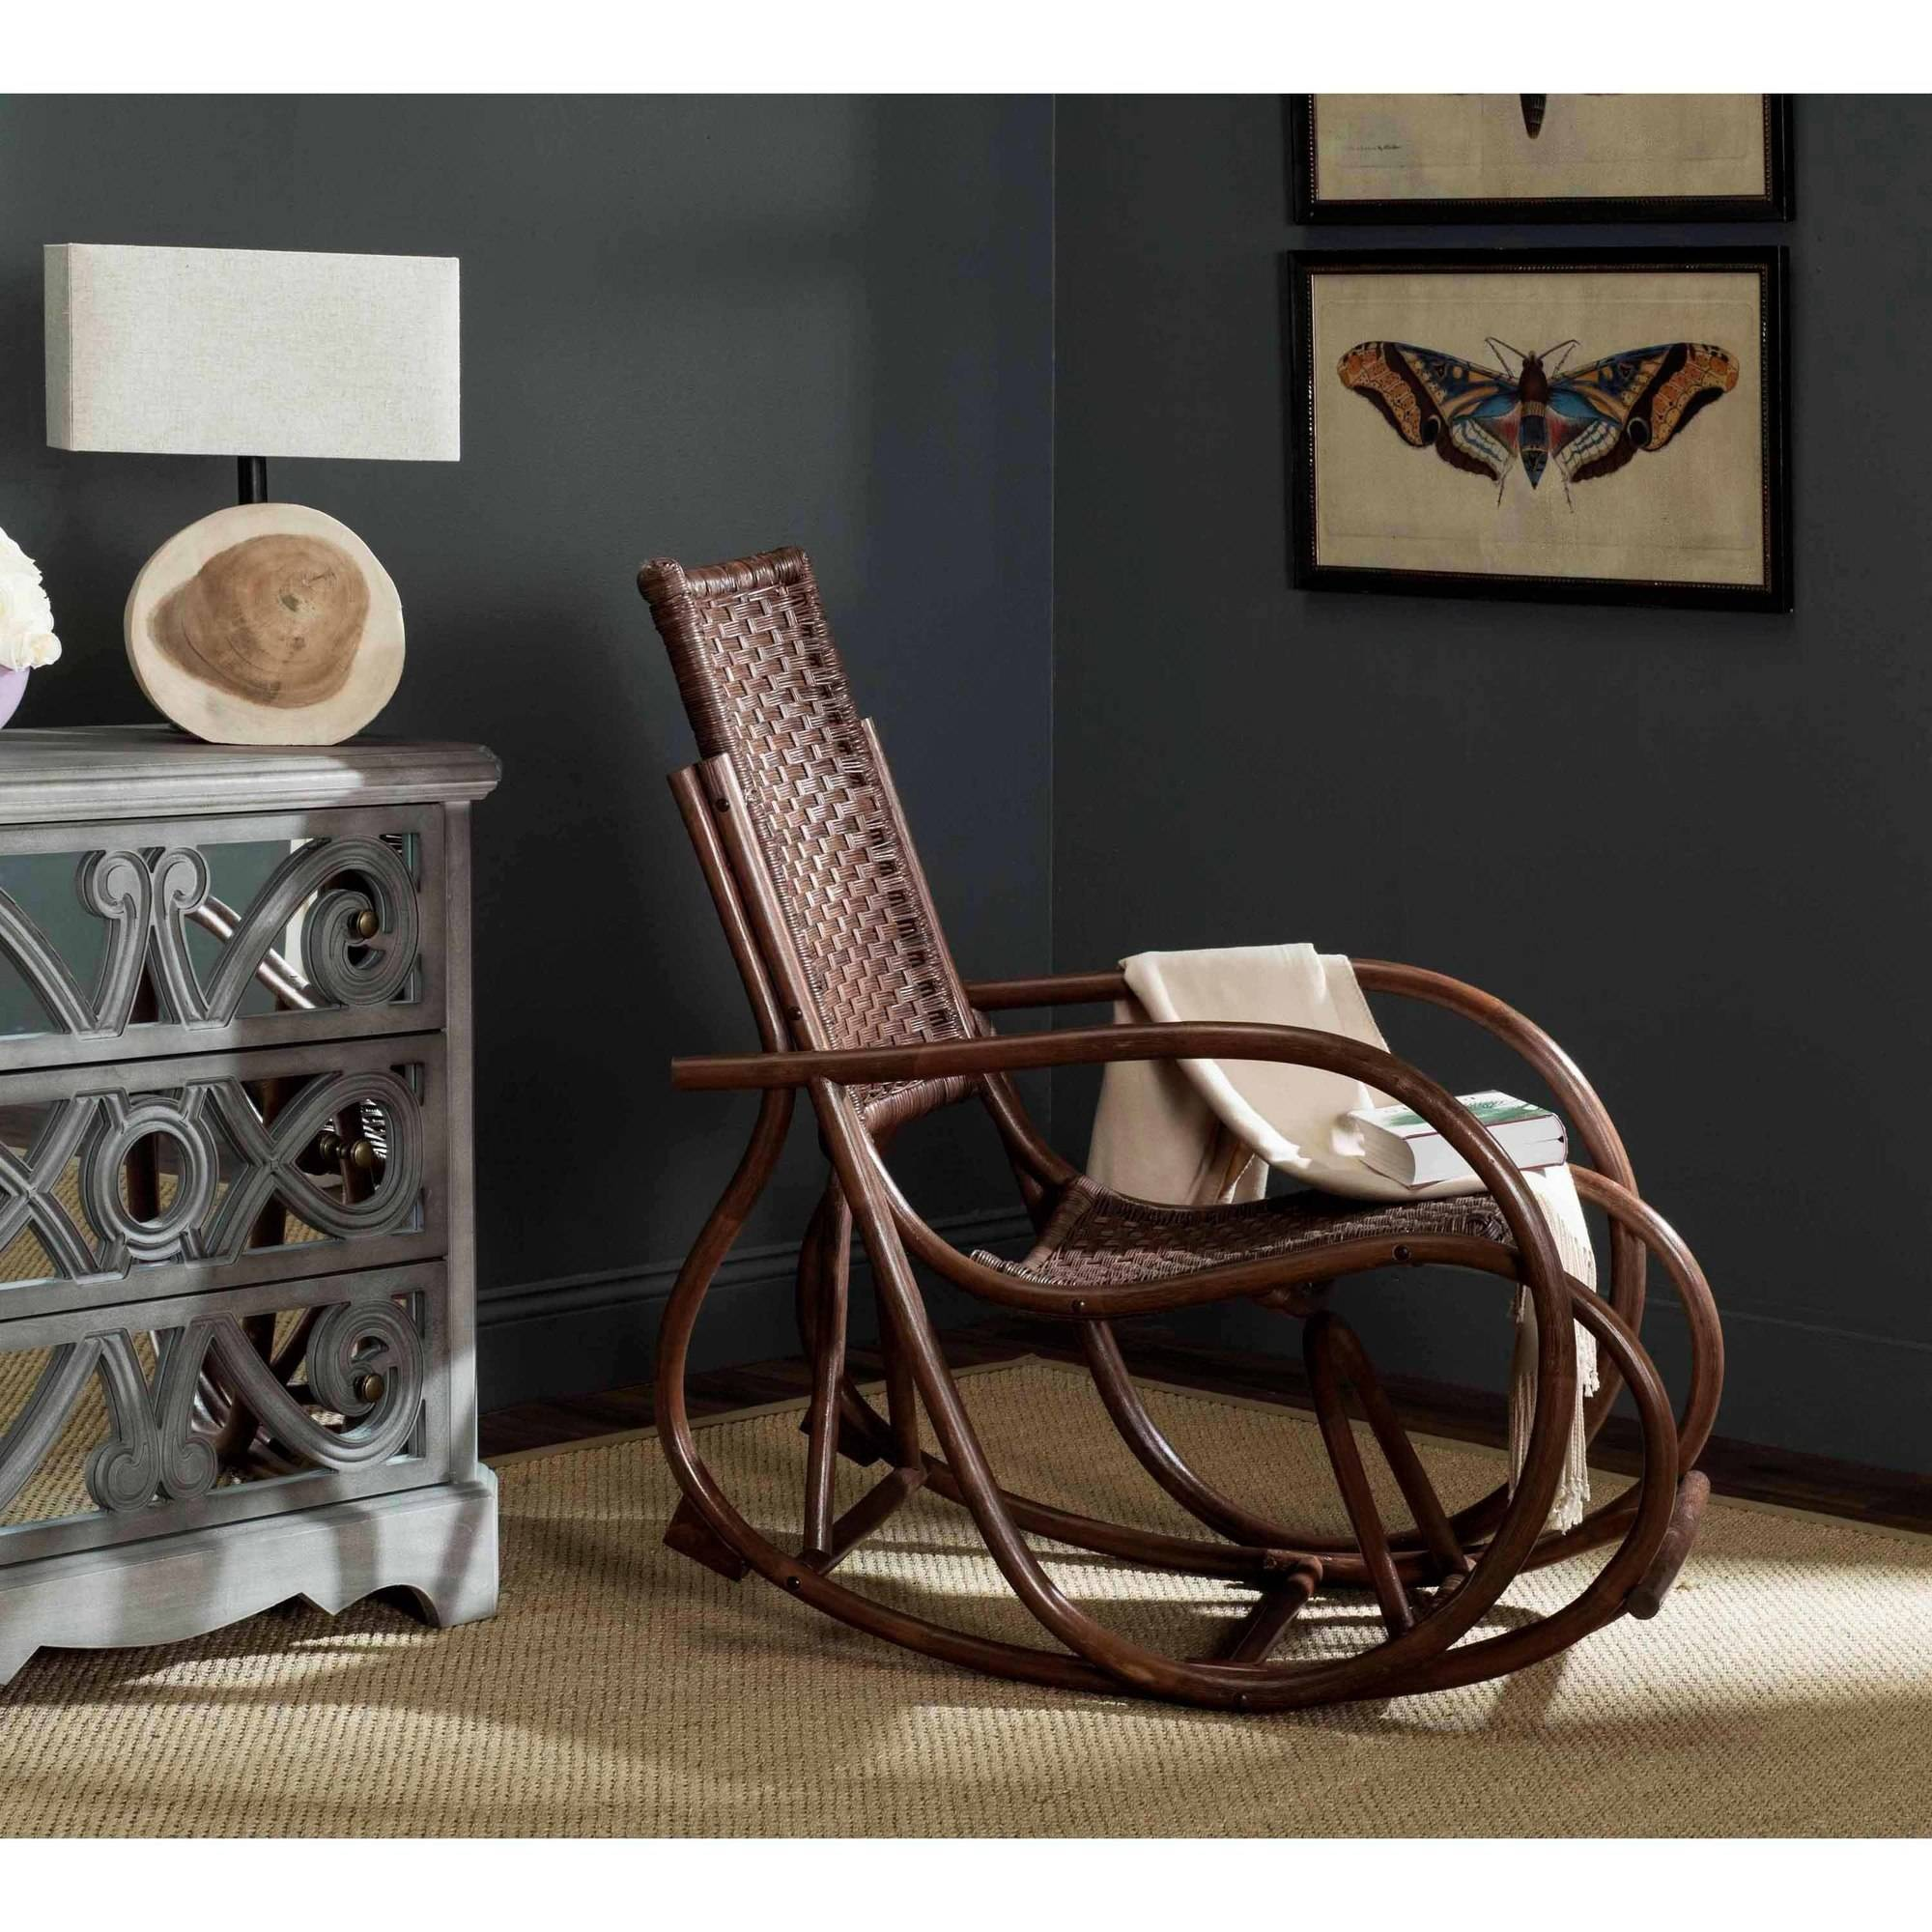 Safavieh Bali Rattan Rocking Chair, Multiple Colors